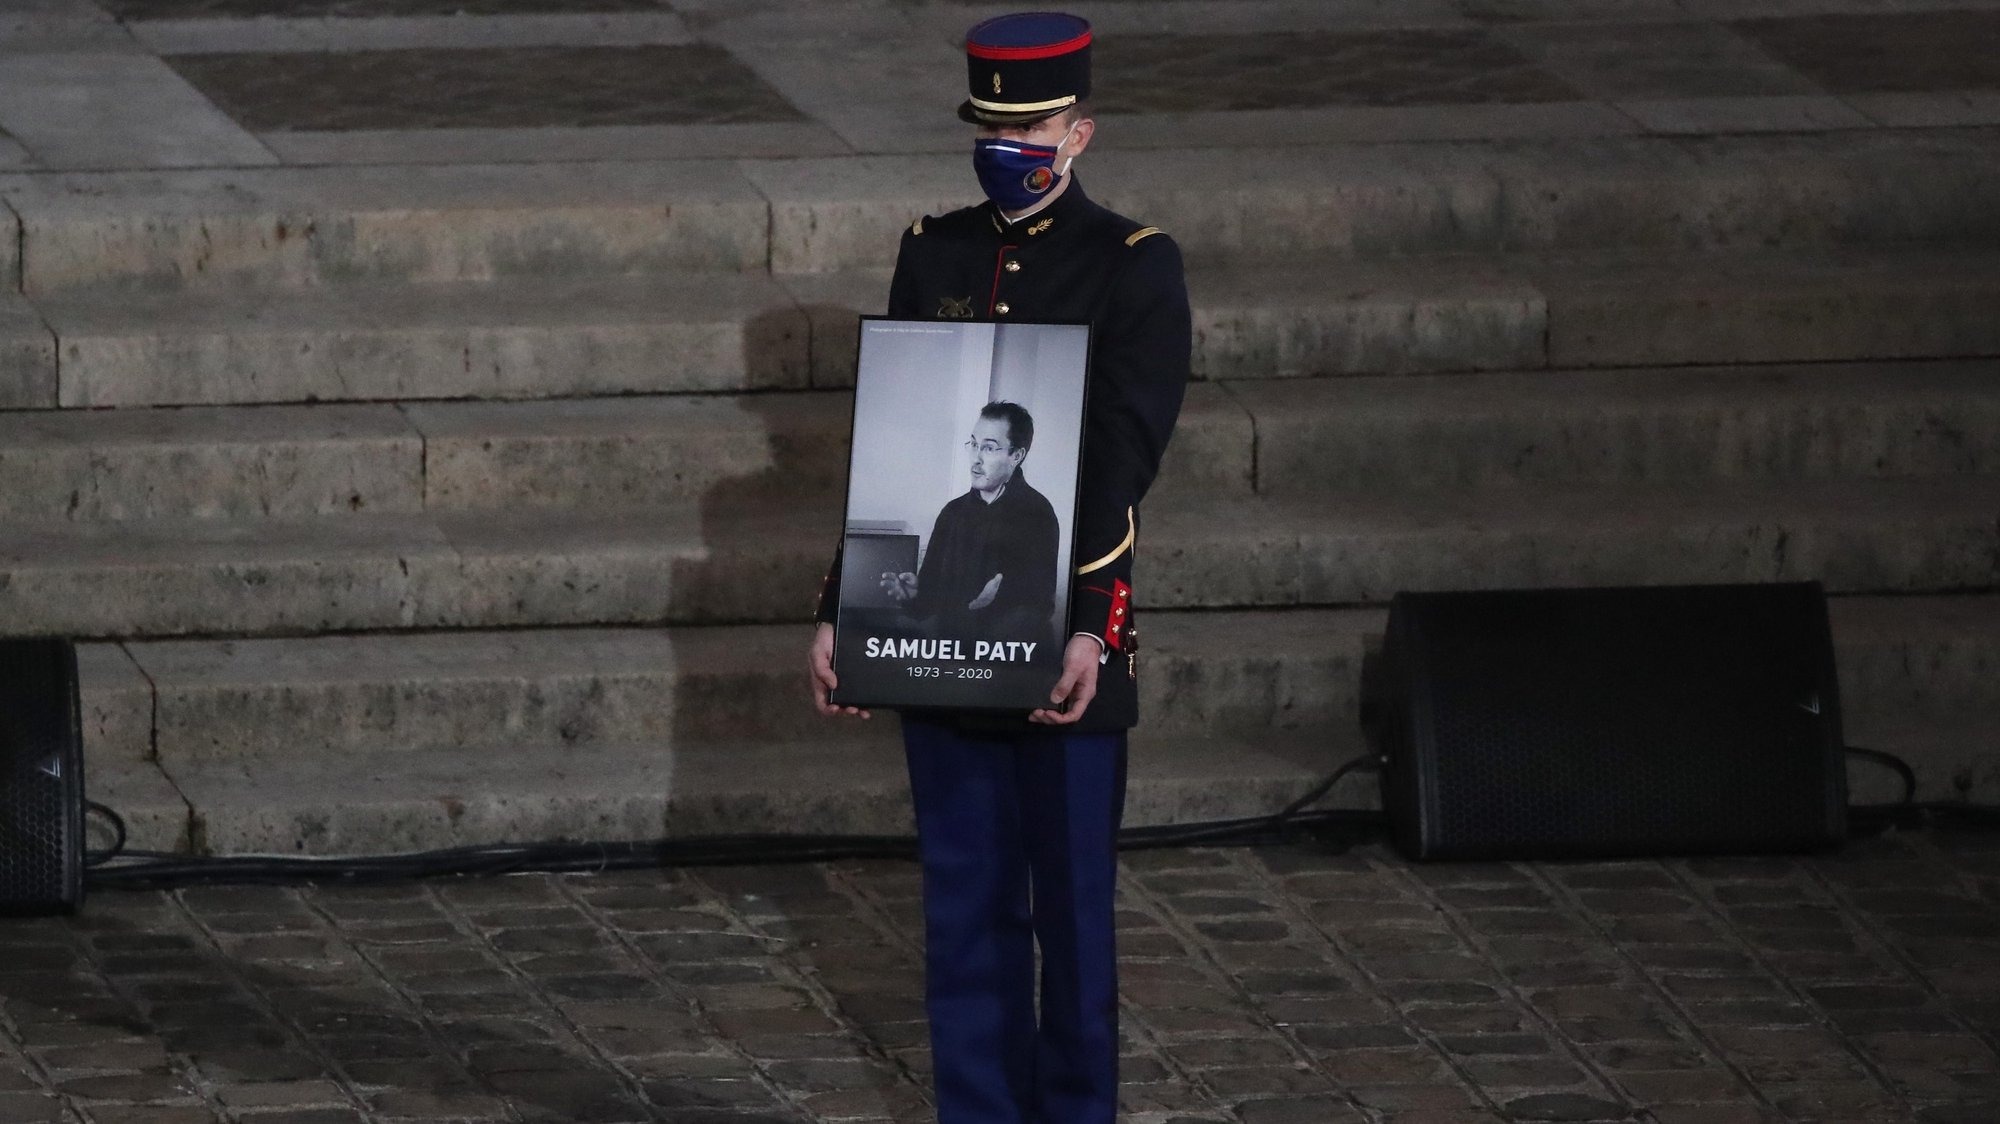 epa08762704 A Republican Guard holds a portrait of Samuel Paty in the courtyard of the Sorbonne university during a national memorial event, in Paris, France, 21 October 2020. French history teacher Samuel Paty was beheaded in Conflans-Sainte-Honorine, northwest of Paris, by a 18-year-old Moscow-born Chechen refugee, who was later shot dead by police.  EPA/Francois Mori / POOL MAXPPP OUT